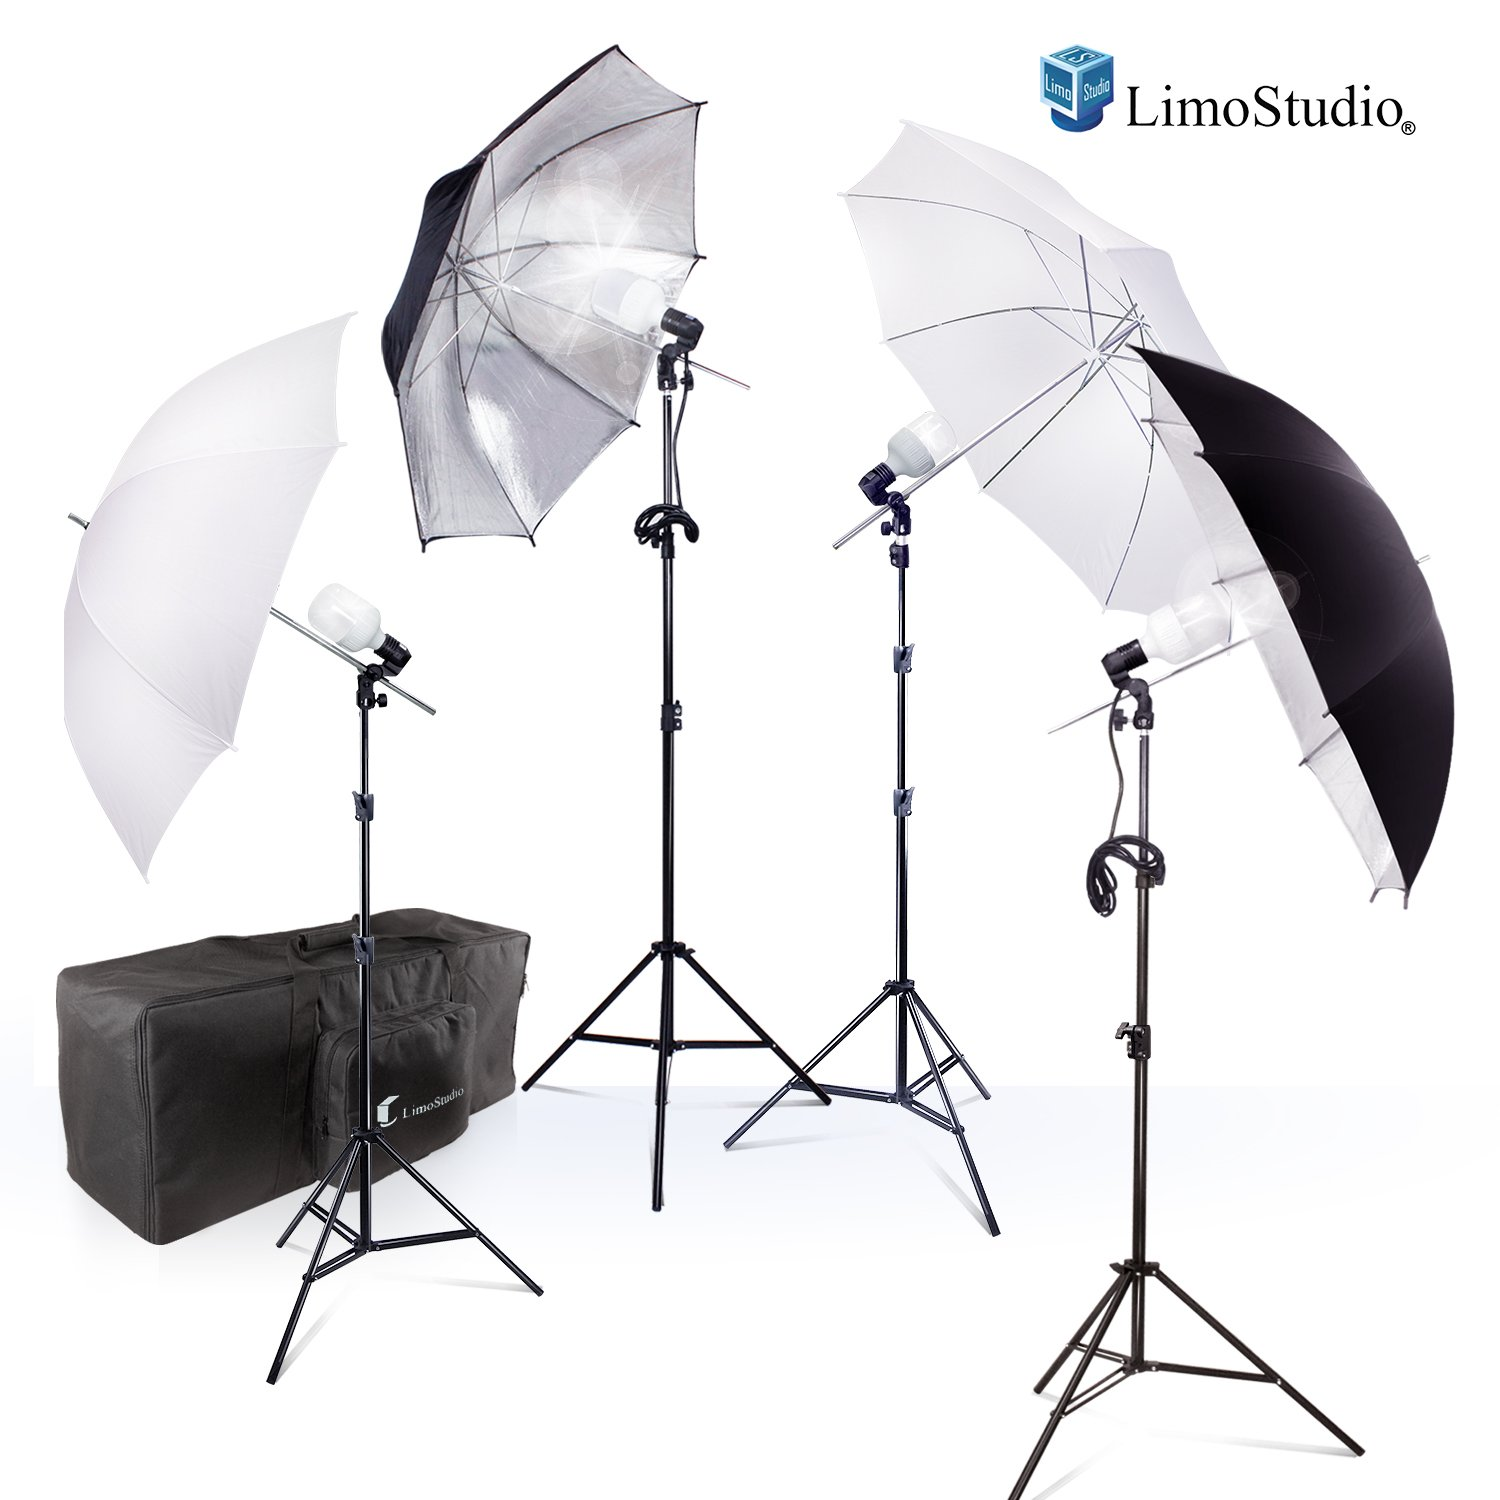 Photography Photo Portrait Studio 800W LED Bulbs Day Light Black and White Umbrella Continuous Lighting Kit by LimoStudio, AGG2754